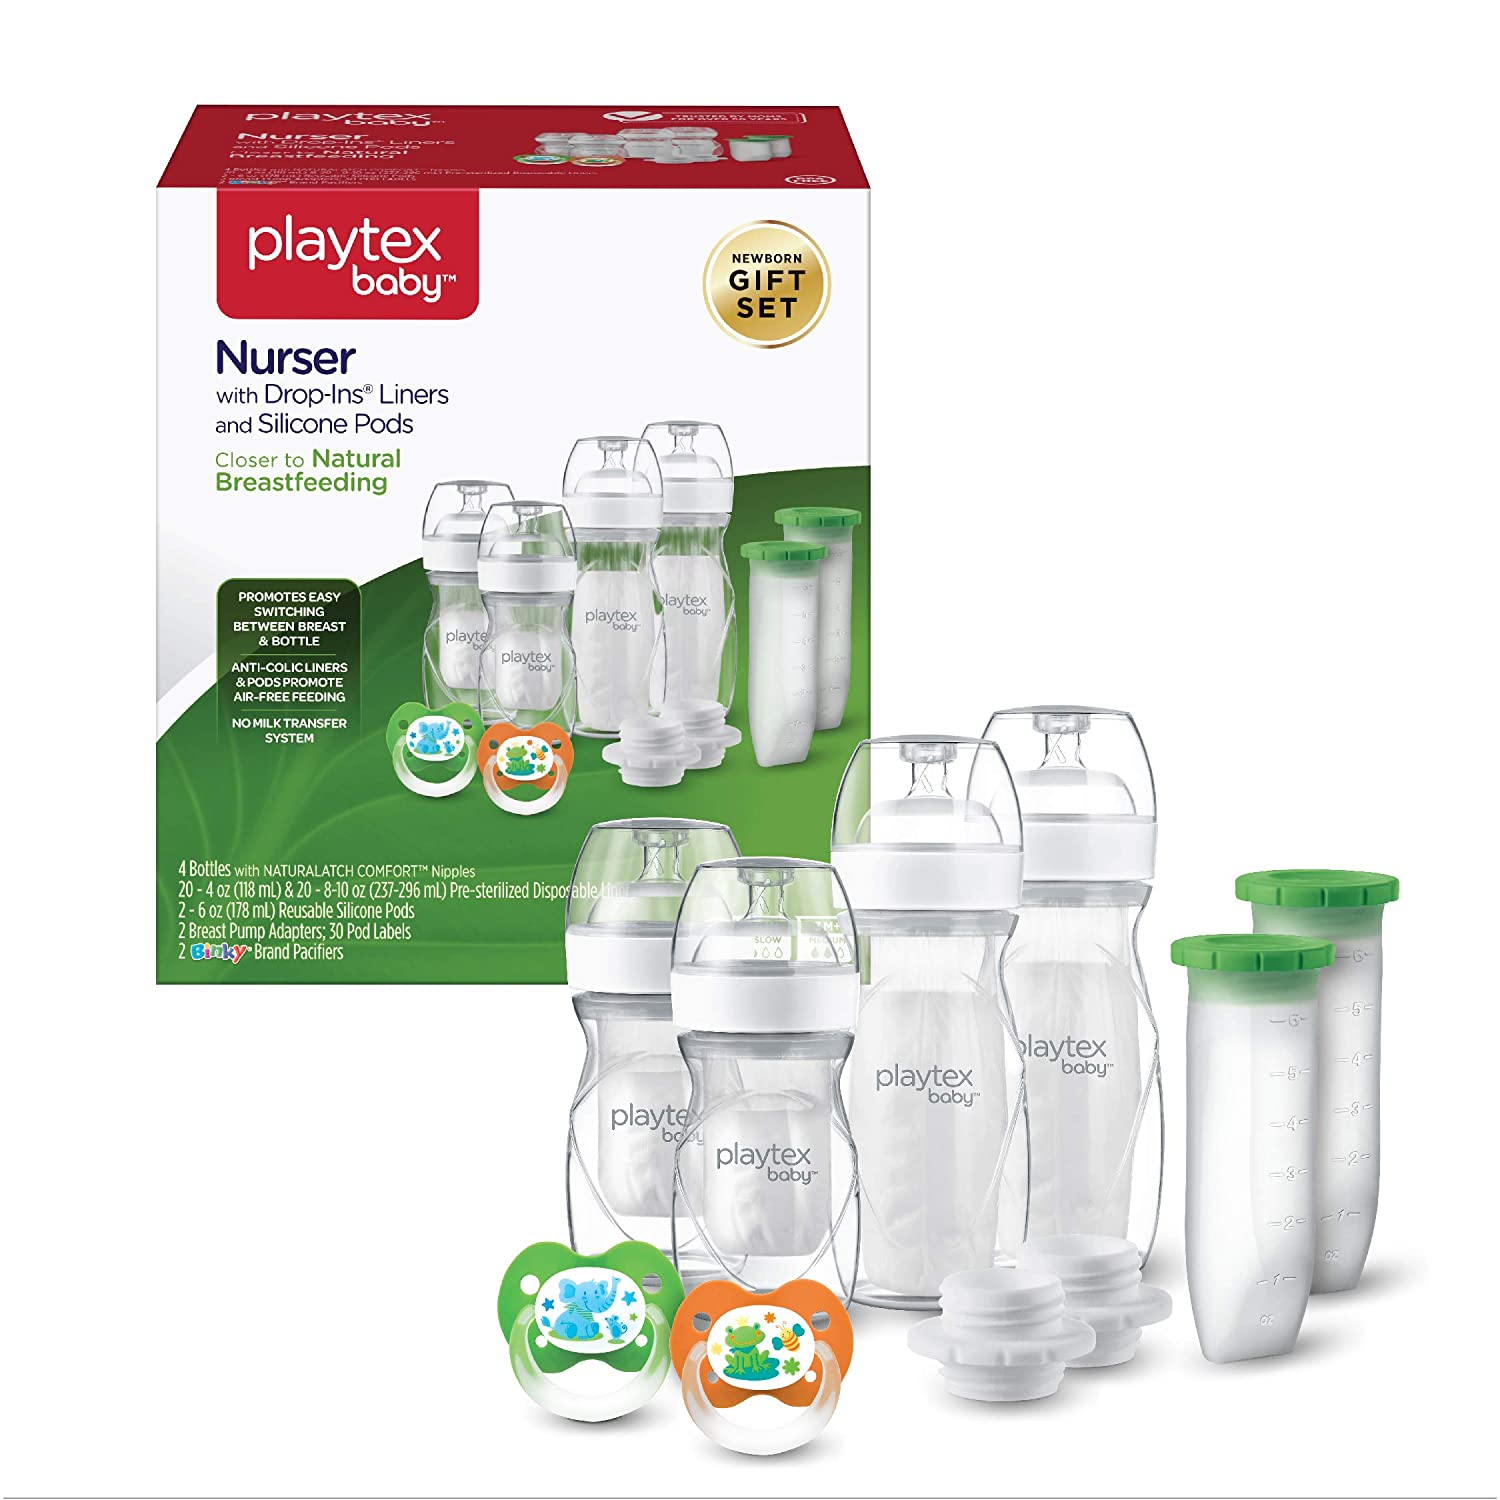 Playtex Baby Nurser Bottle Gift Set, with Pre-Sterilized Disposable Drop-Ins Liners and Silicone Pods, Closer to Breastfeeding